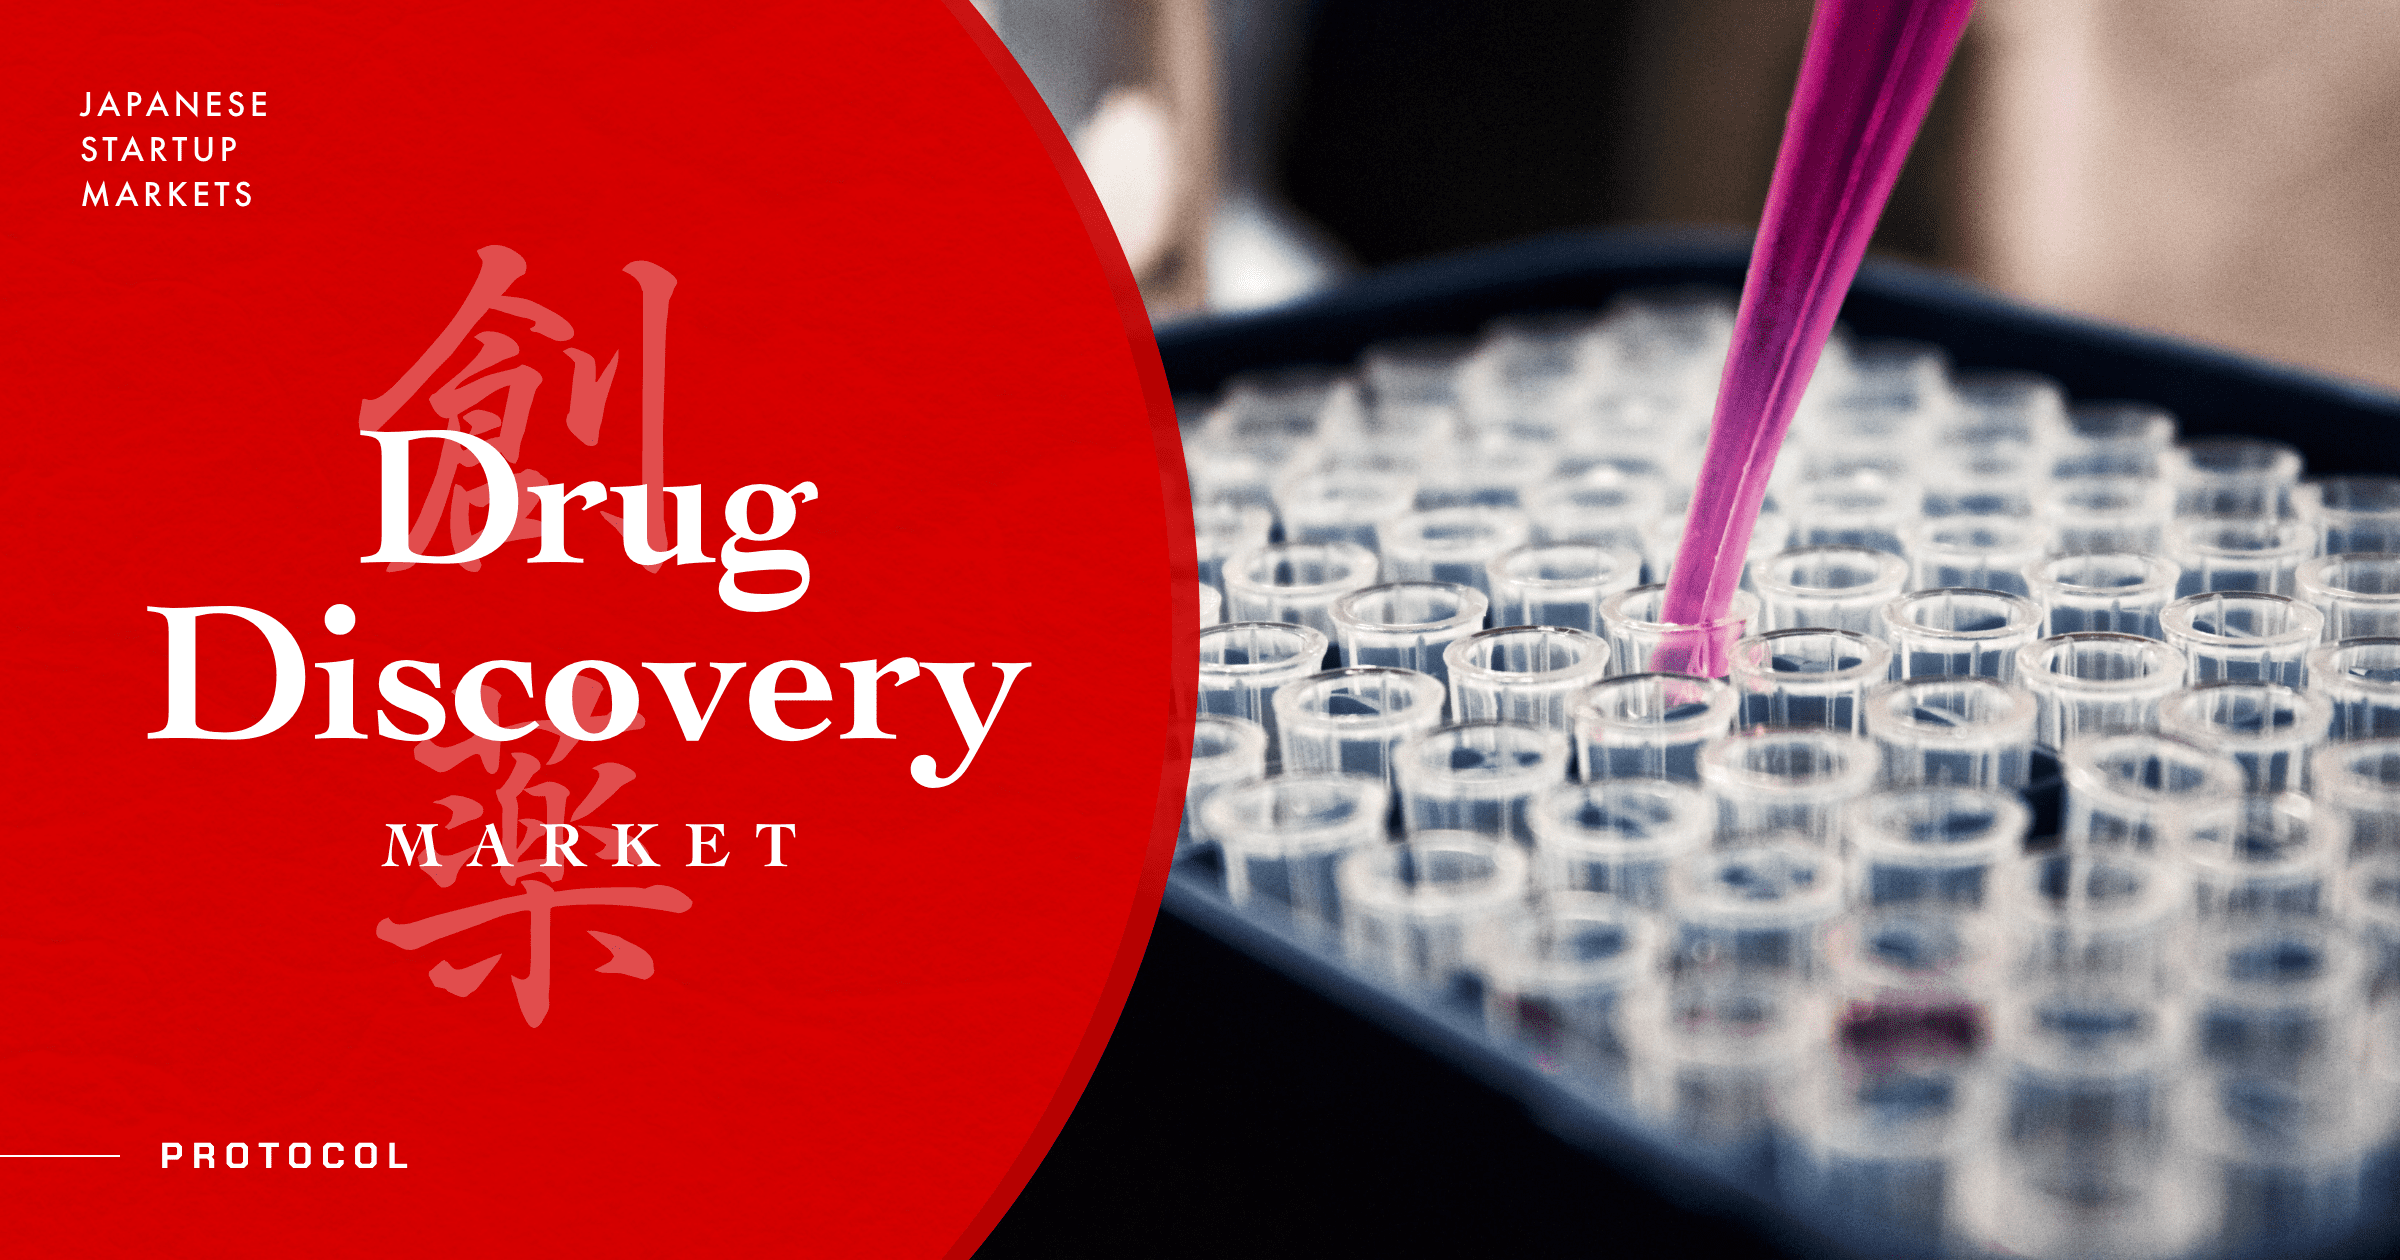 Japanese Startup Markets: Drug Discovery